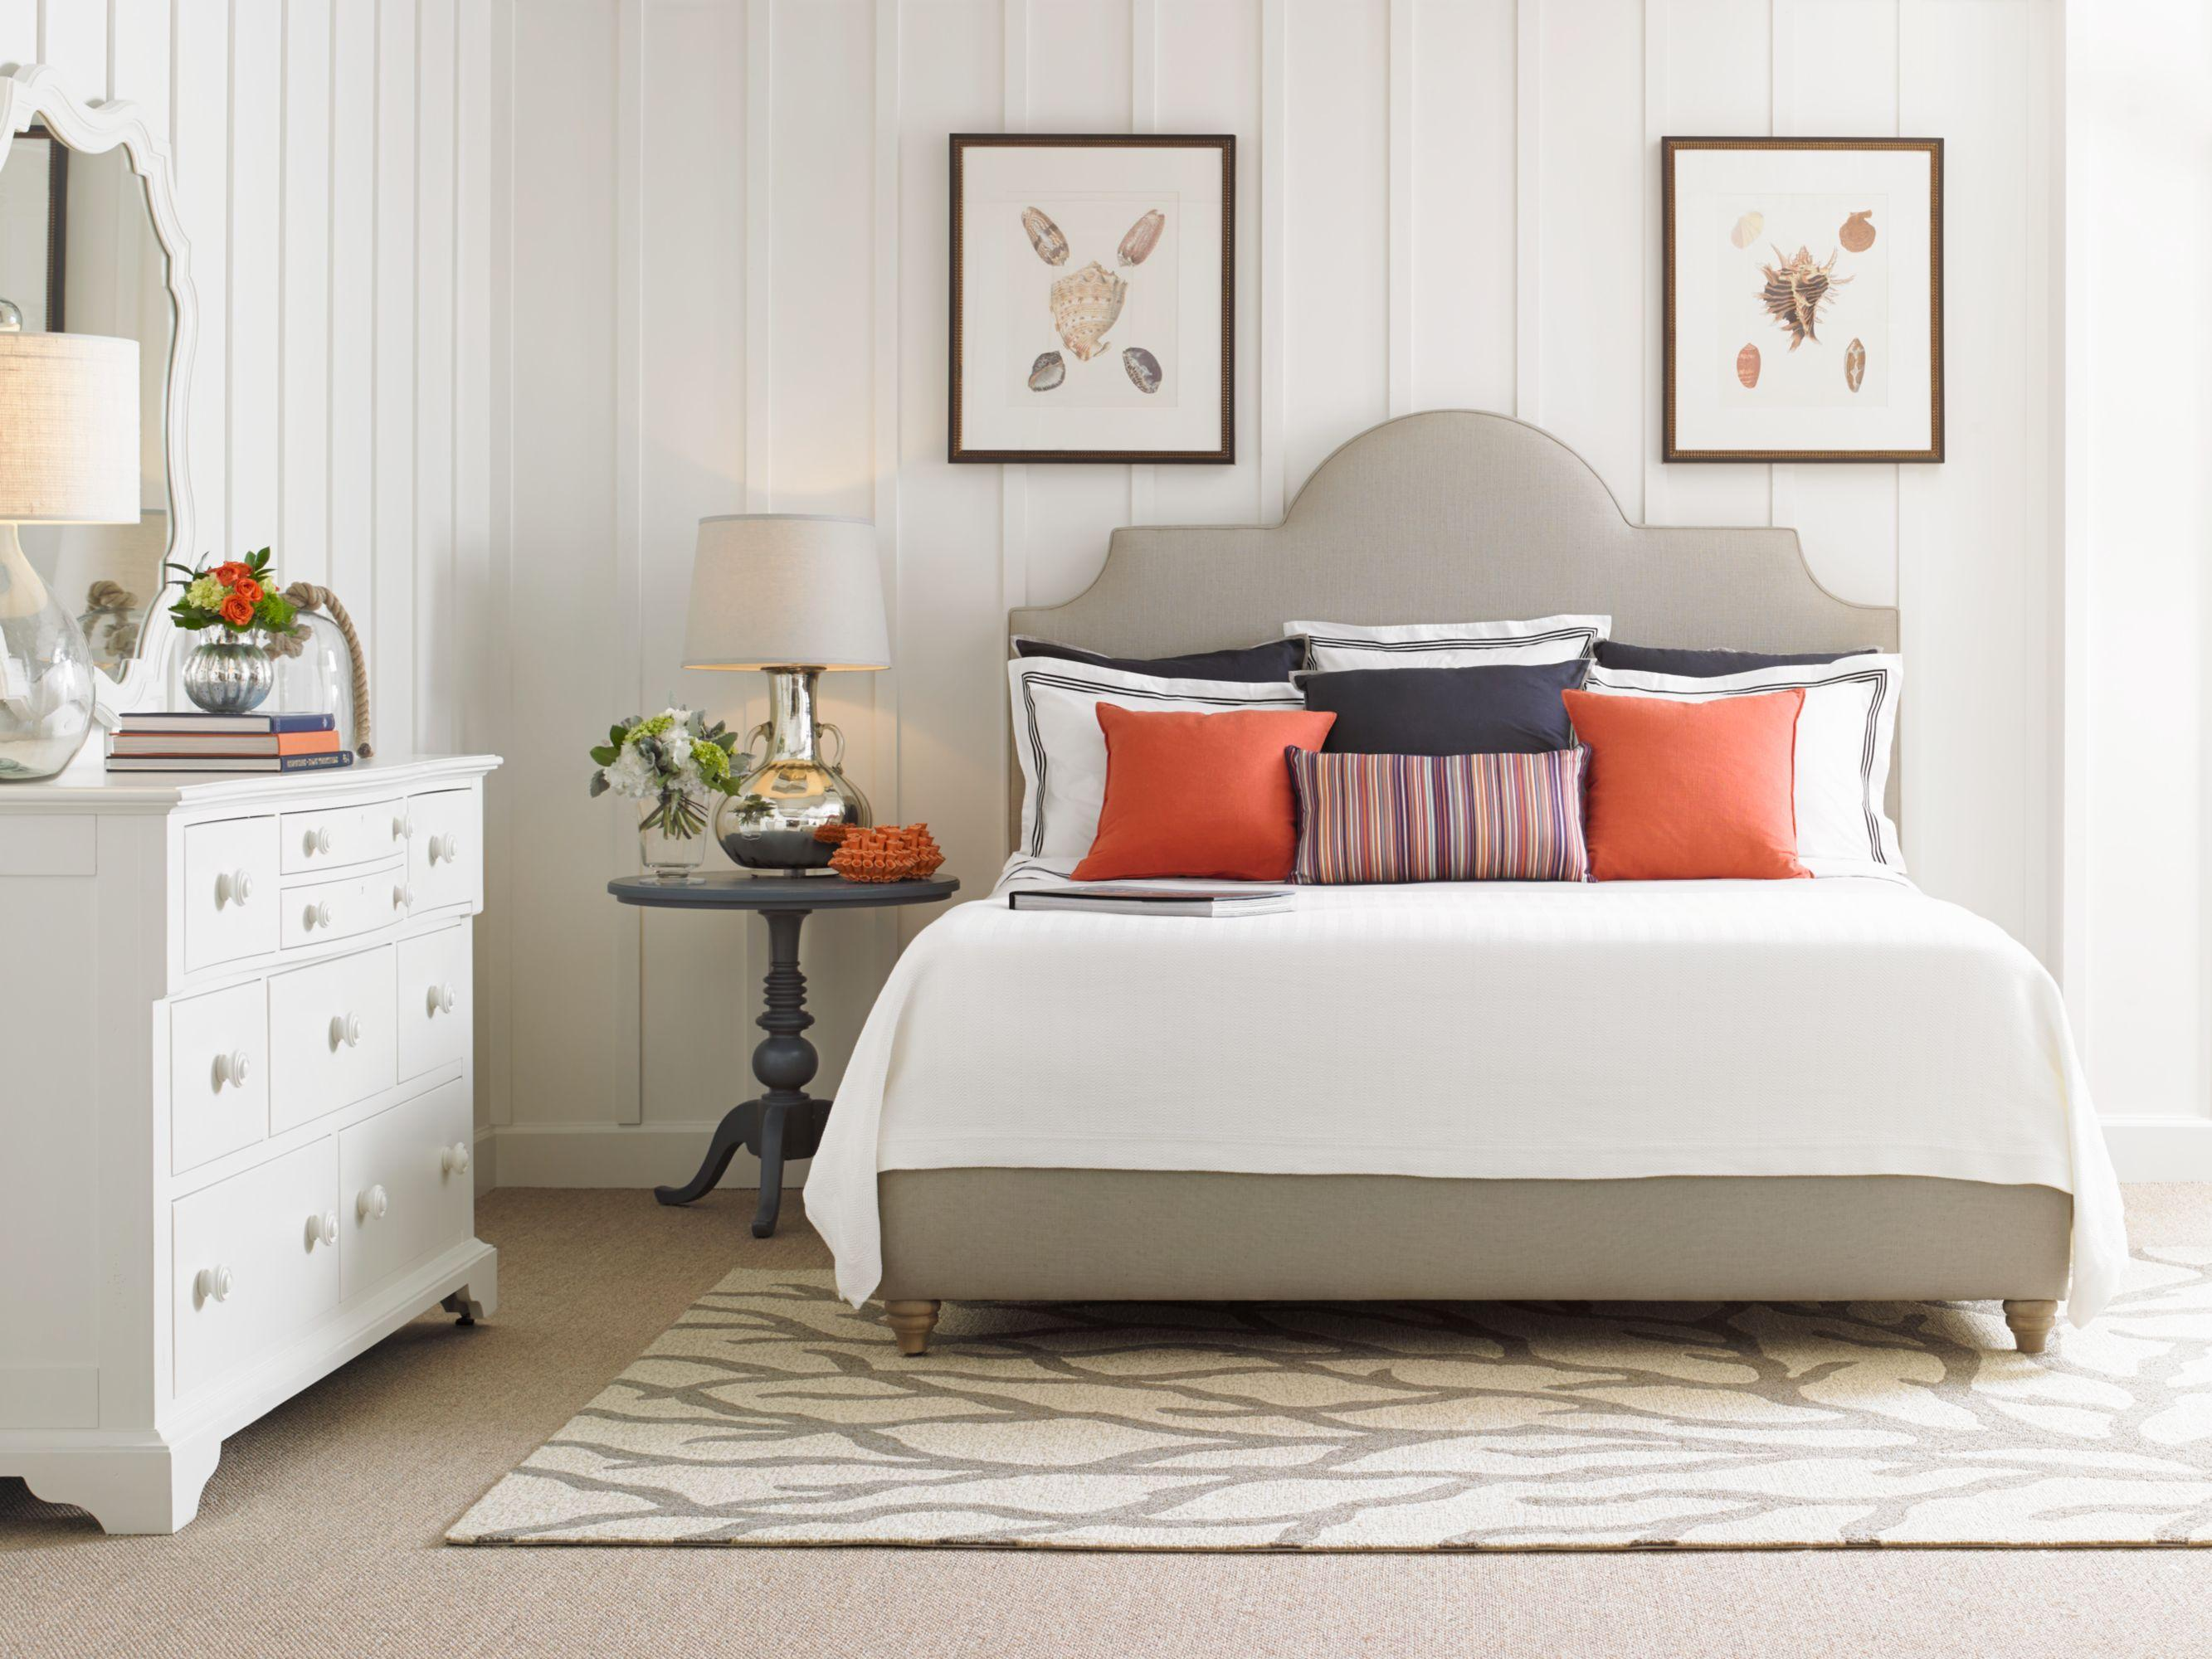 Stanley Furniture Coastal Living Retreat Queen Bedroom Group - Item Number: 411-B3 Q Bedroom Group 1